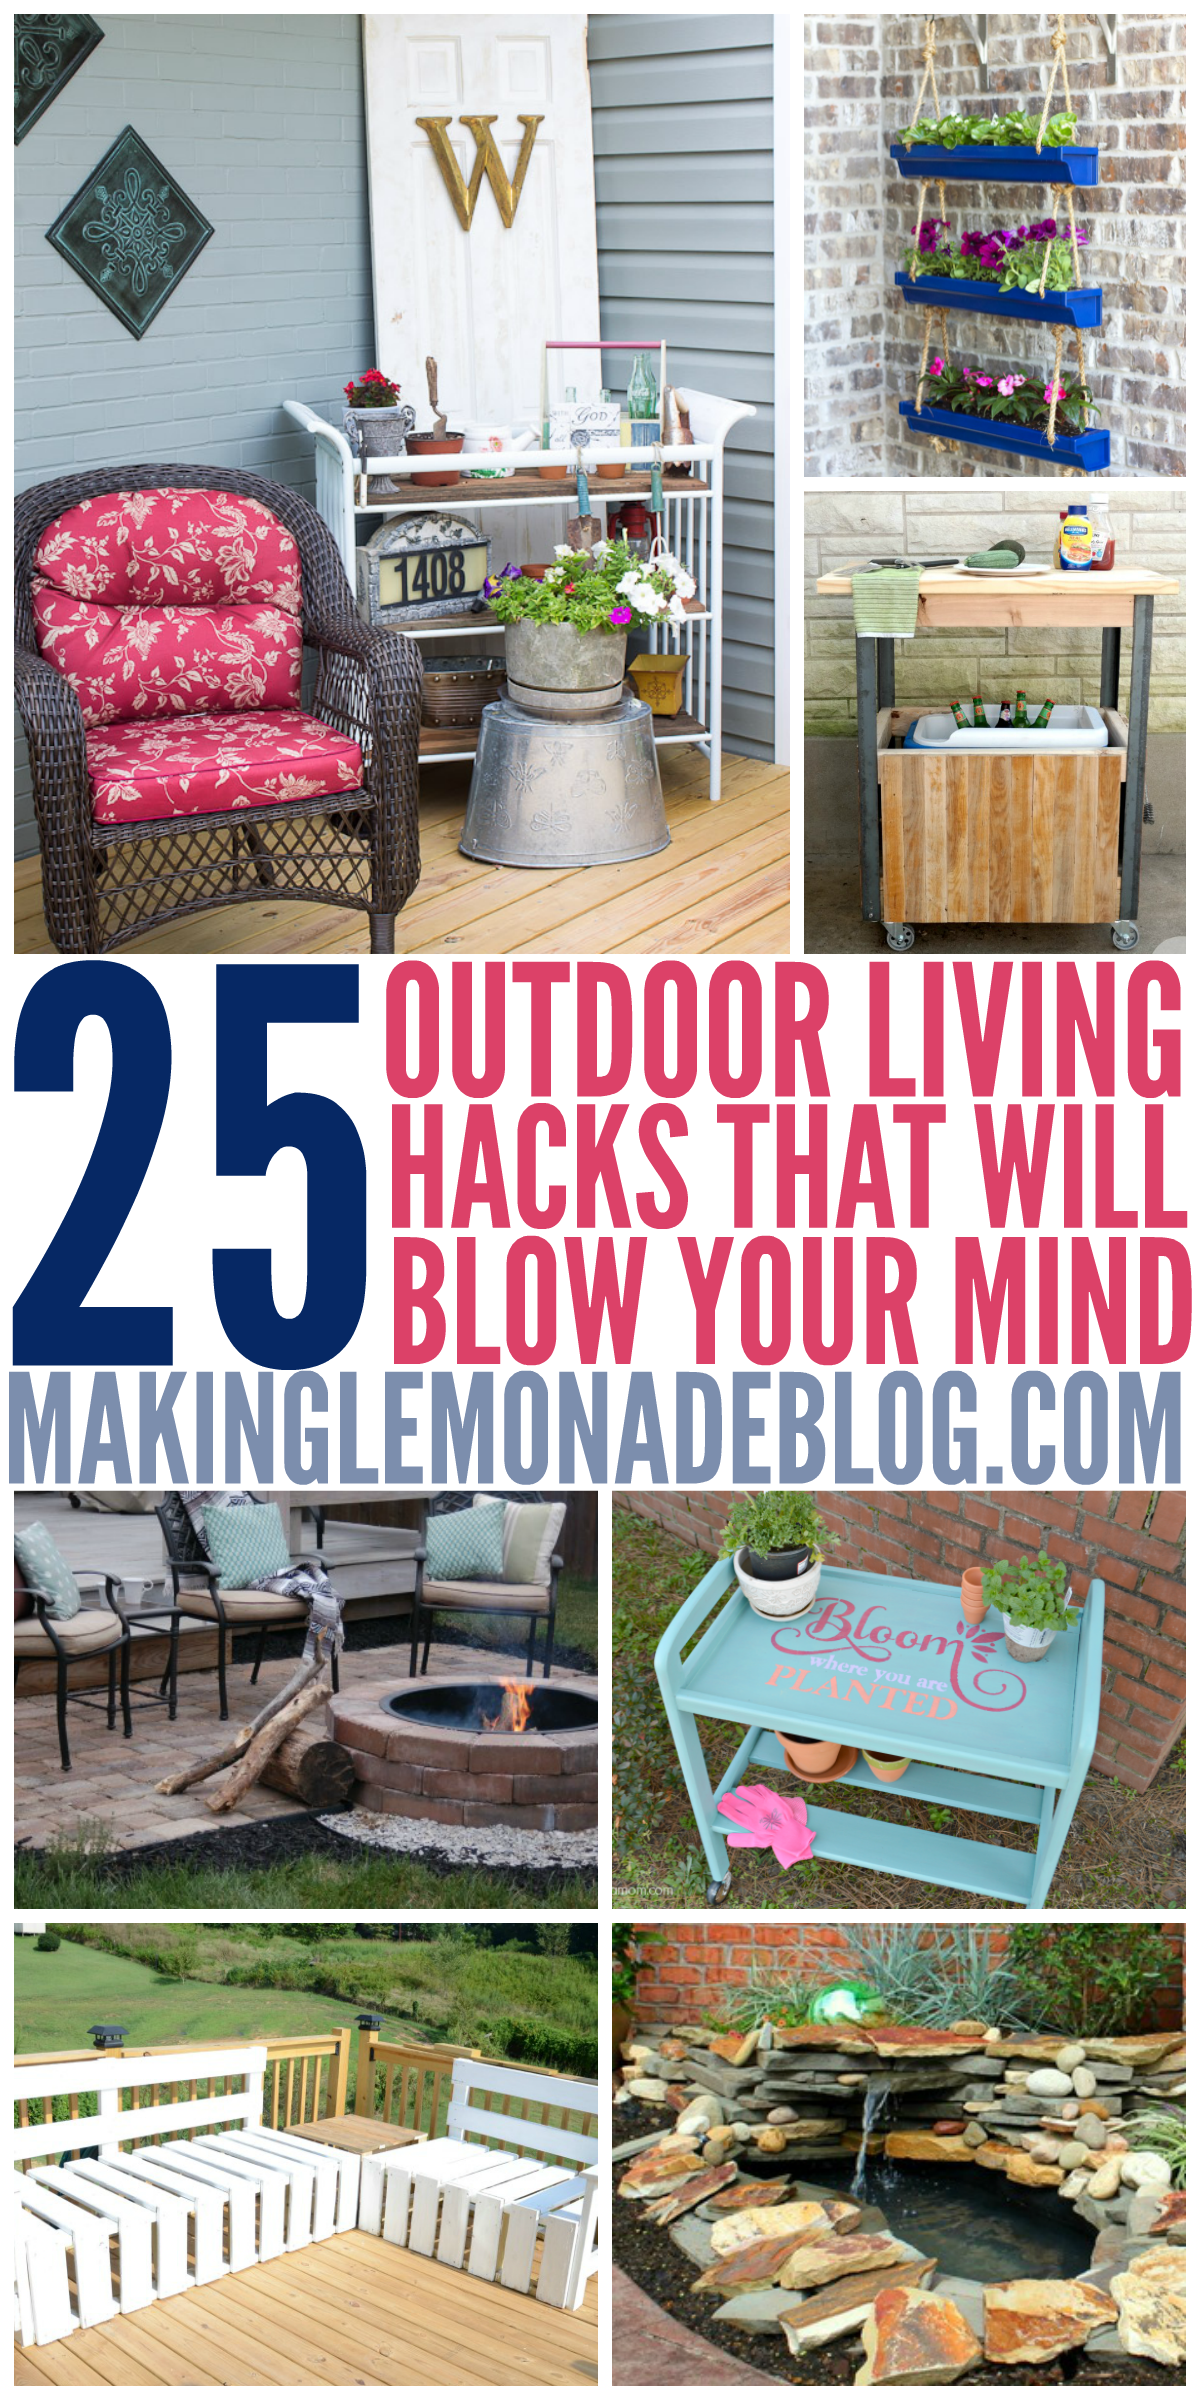 Insanely Clever Outdoor Living Diys To